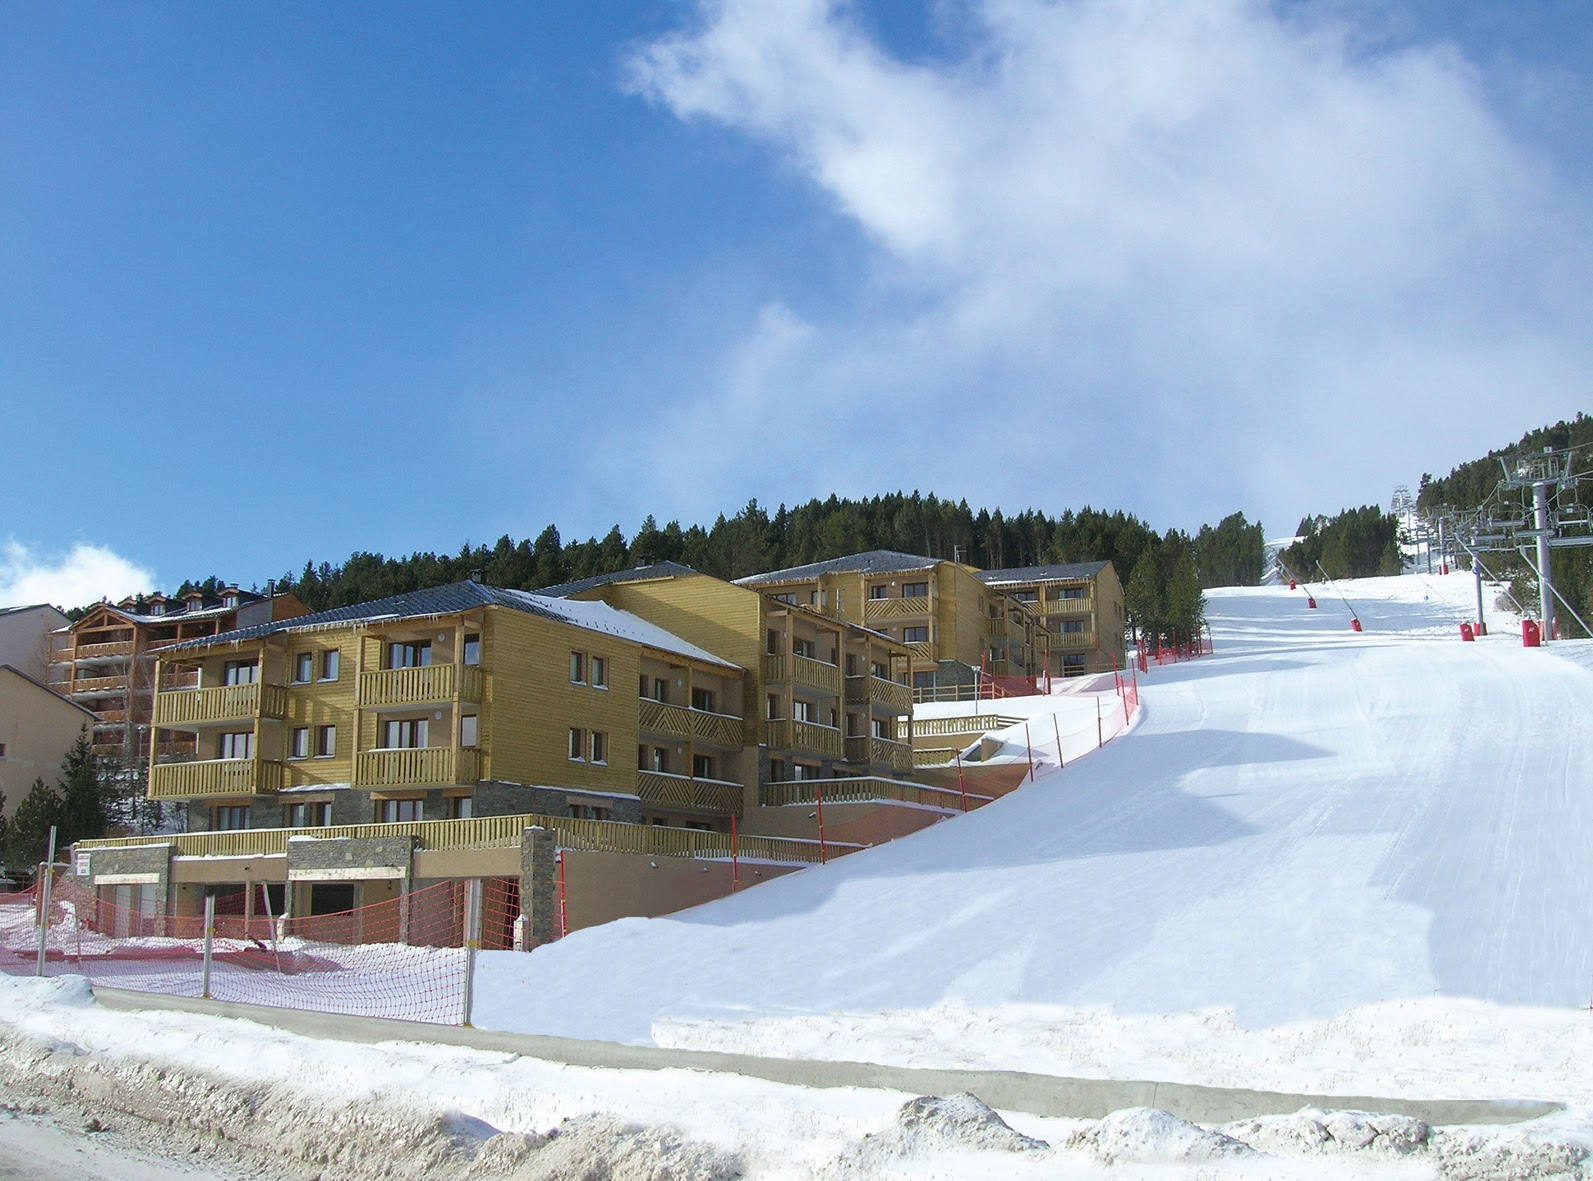 Door-step skiing from Prat de Lis in Les Angles, self catered accommodation French Pyrenees